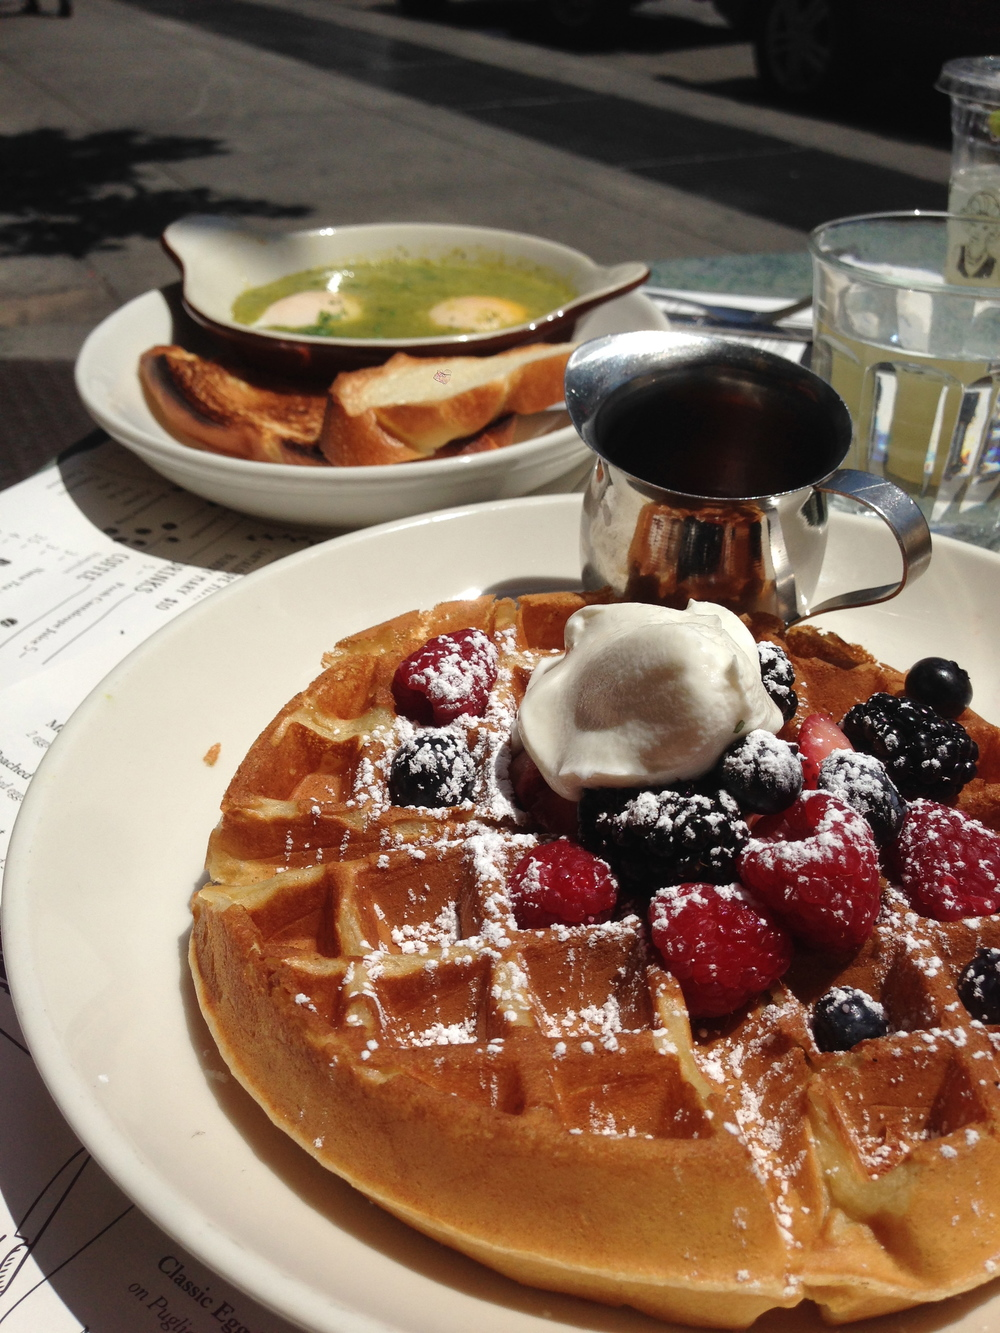 Rosewater Waffle with fresh berries